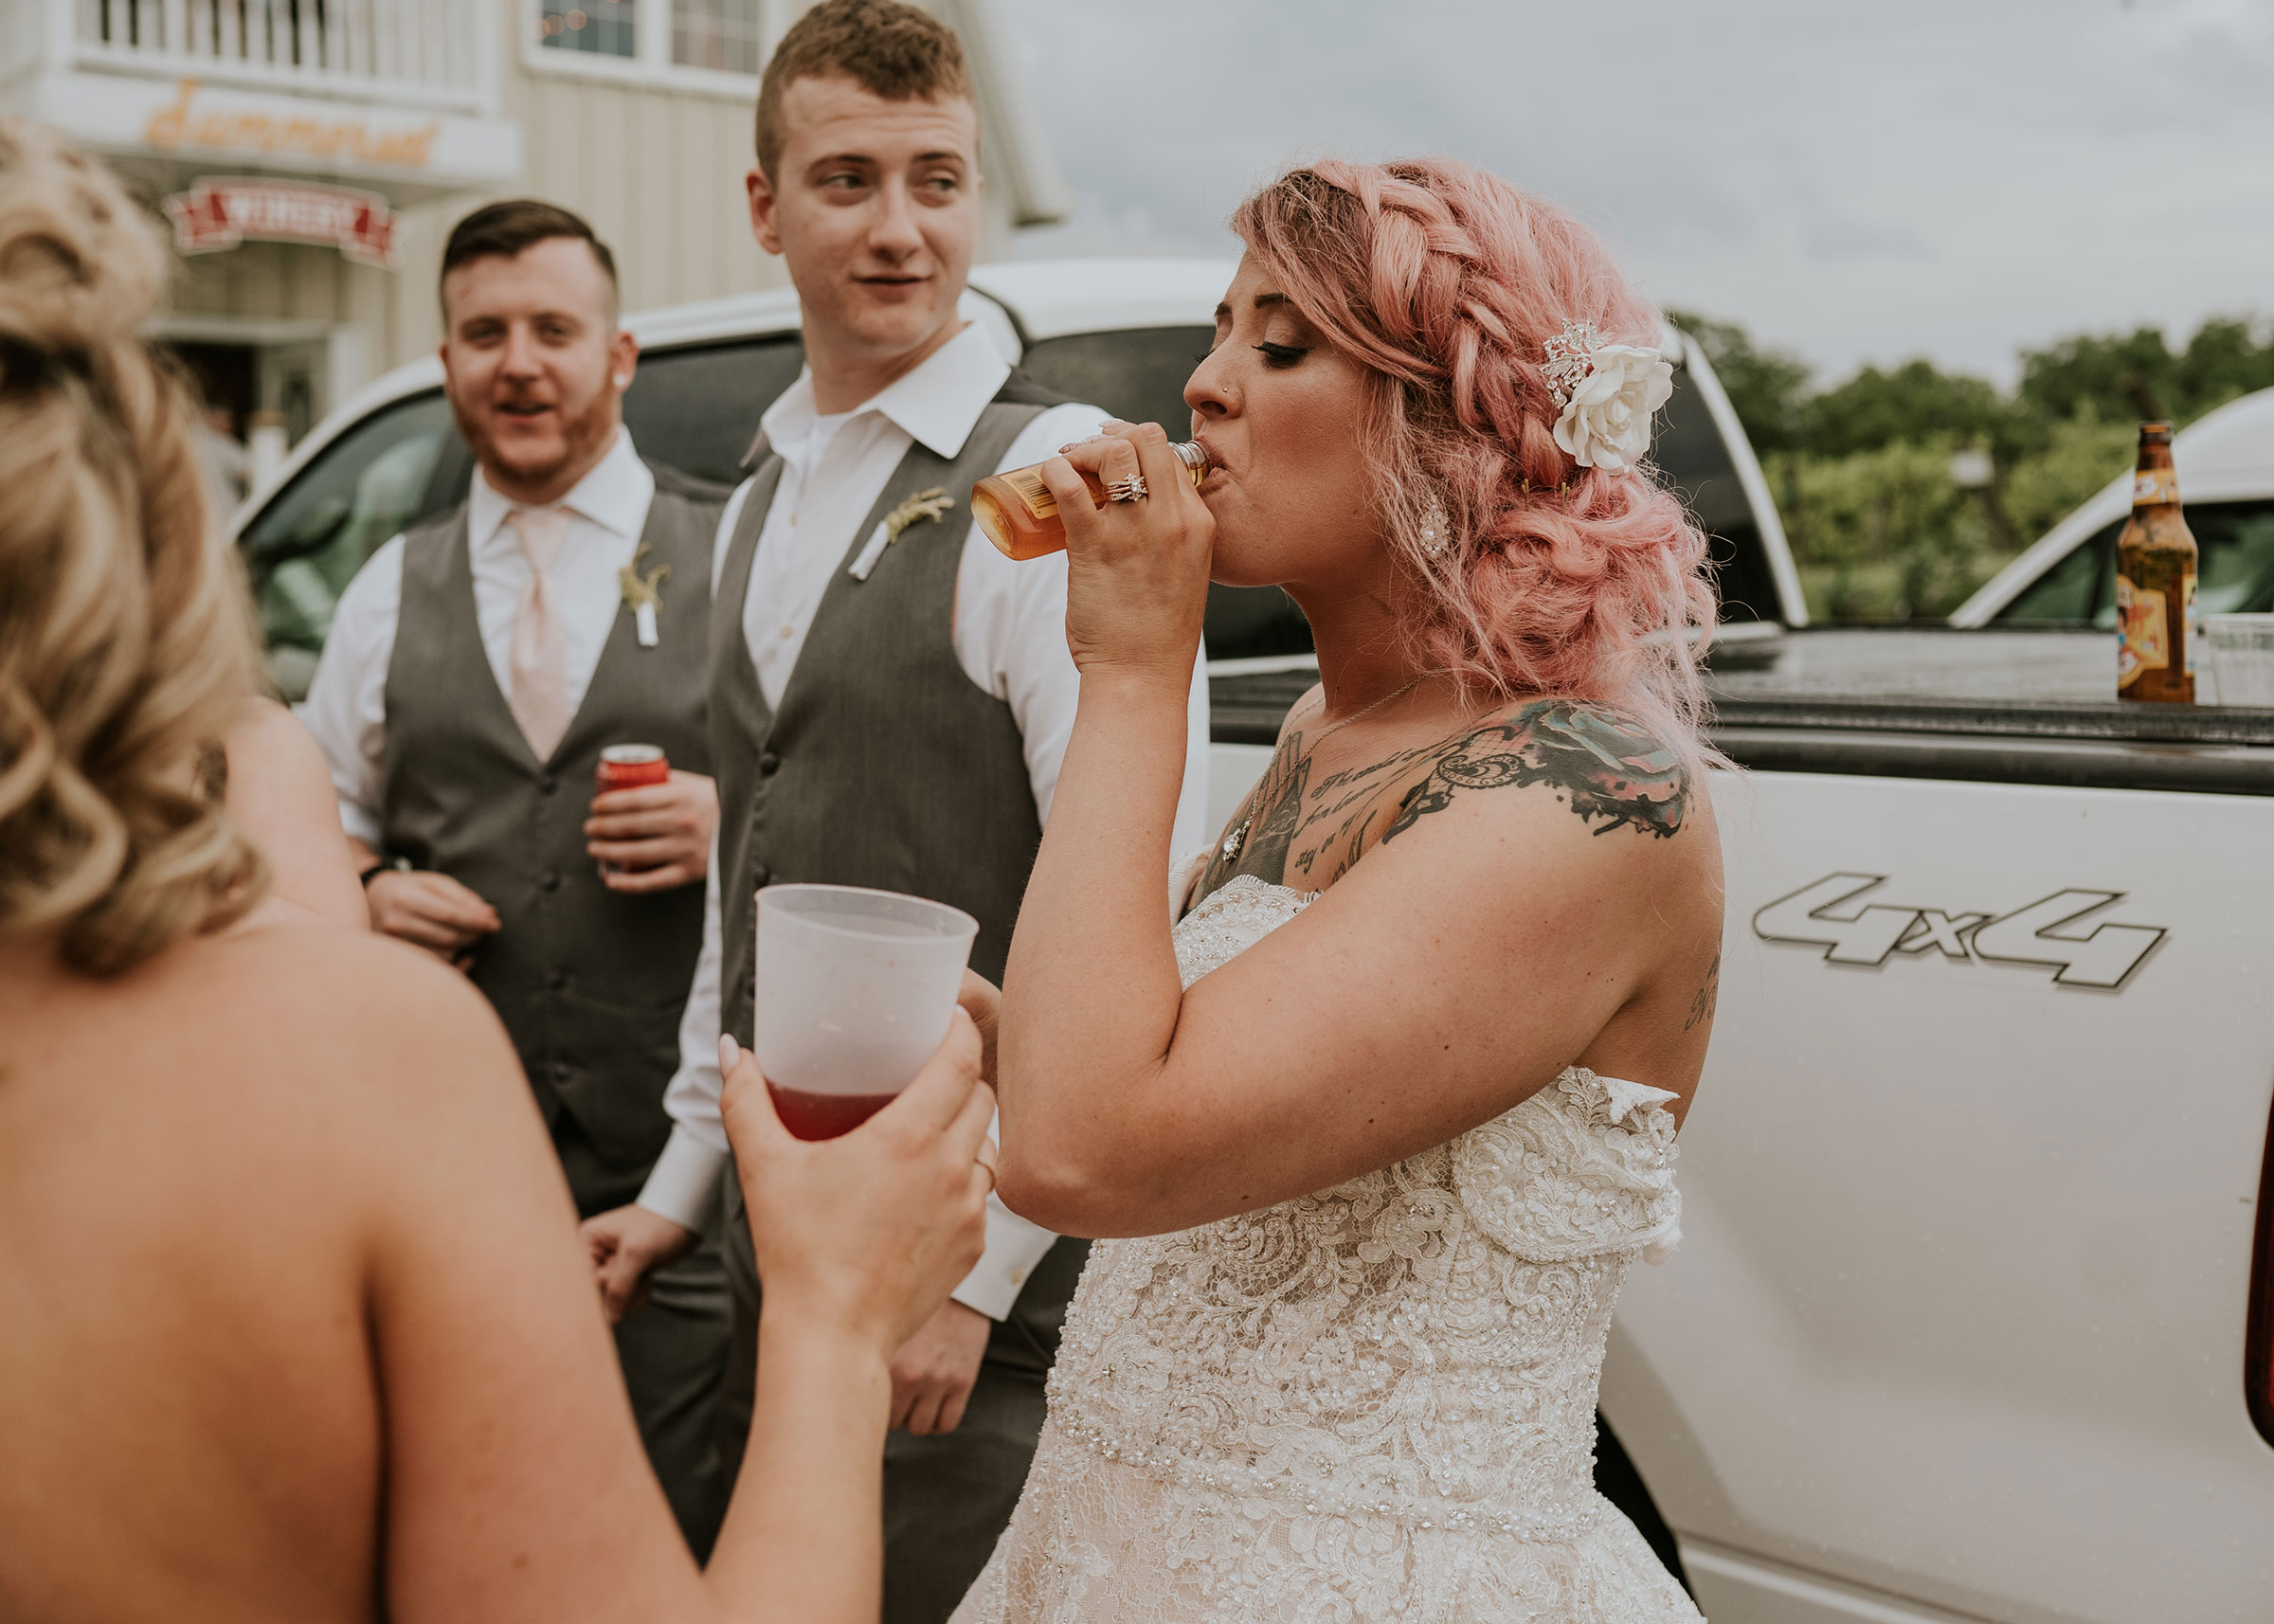 bride-taking-shots-with-brothers-wedding-summerset-winery-indianola-iowa-raelyn-ramey-photography.jpg